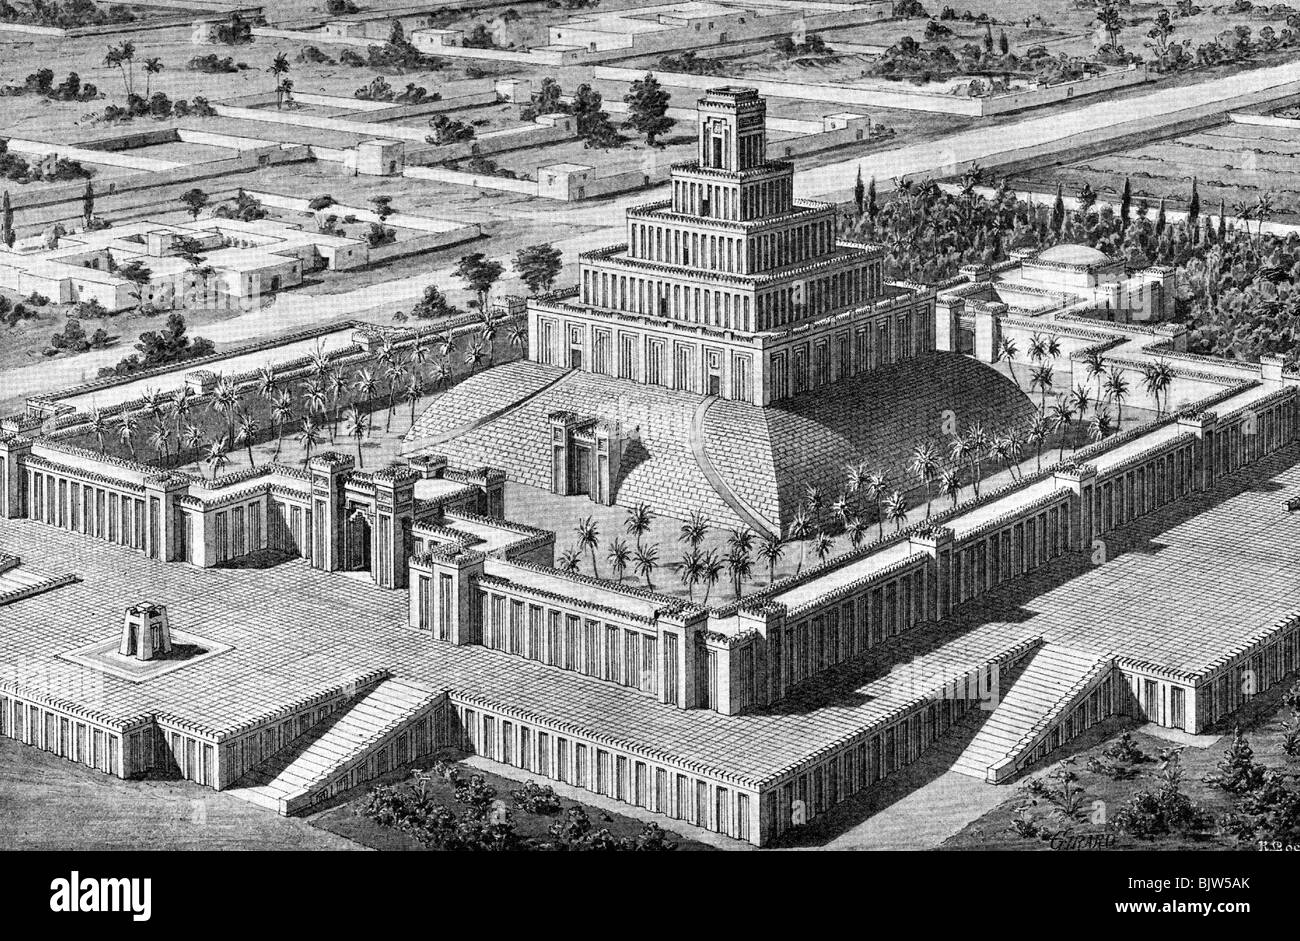 architecture in the ancient world Learn architecture of the ancient world building with free interactive flashcards choose from 271 different sets of architecture of the ancient world building flashcards on quizlet.